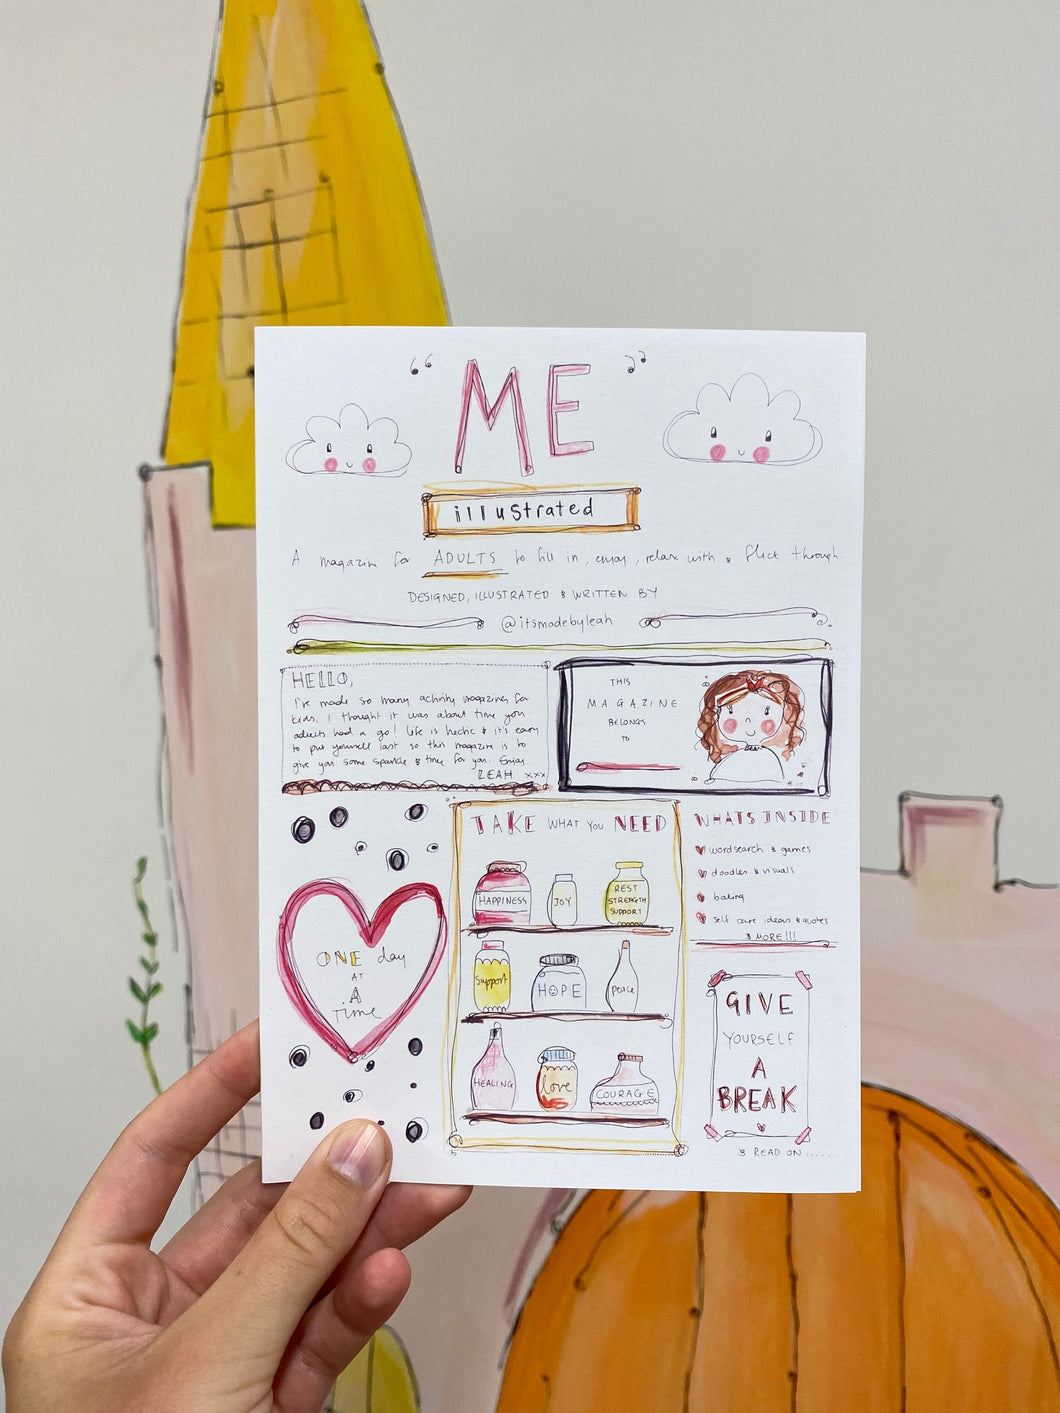 'ME' illustrated magazine for adults